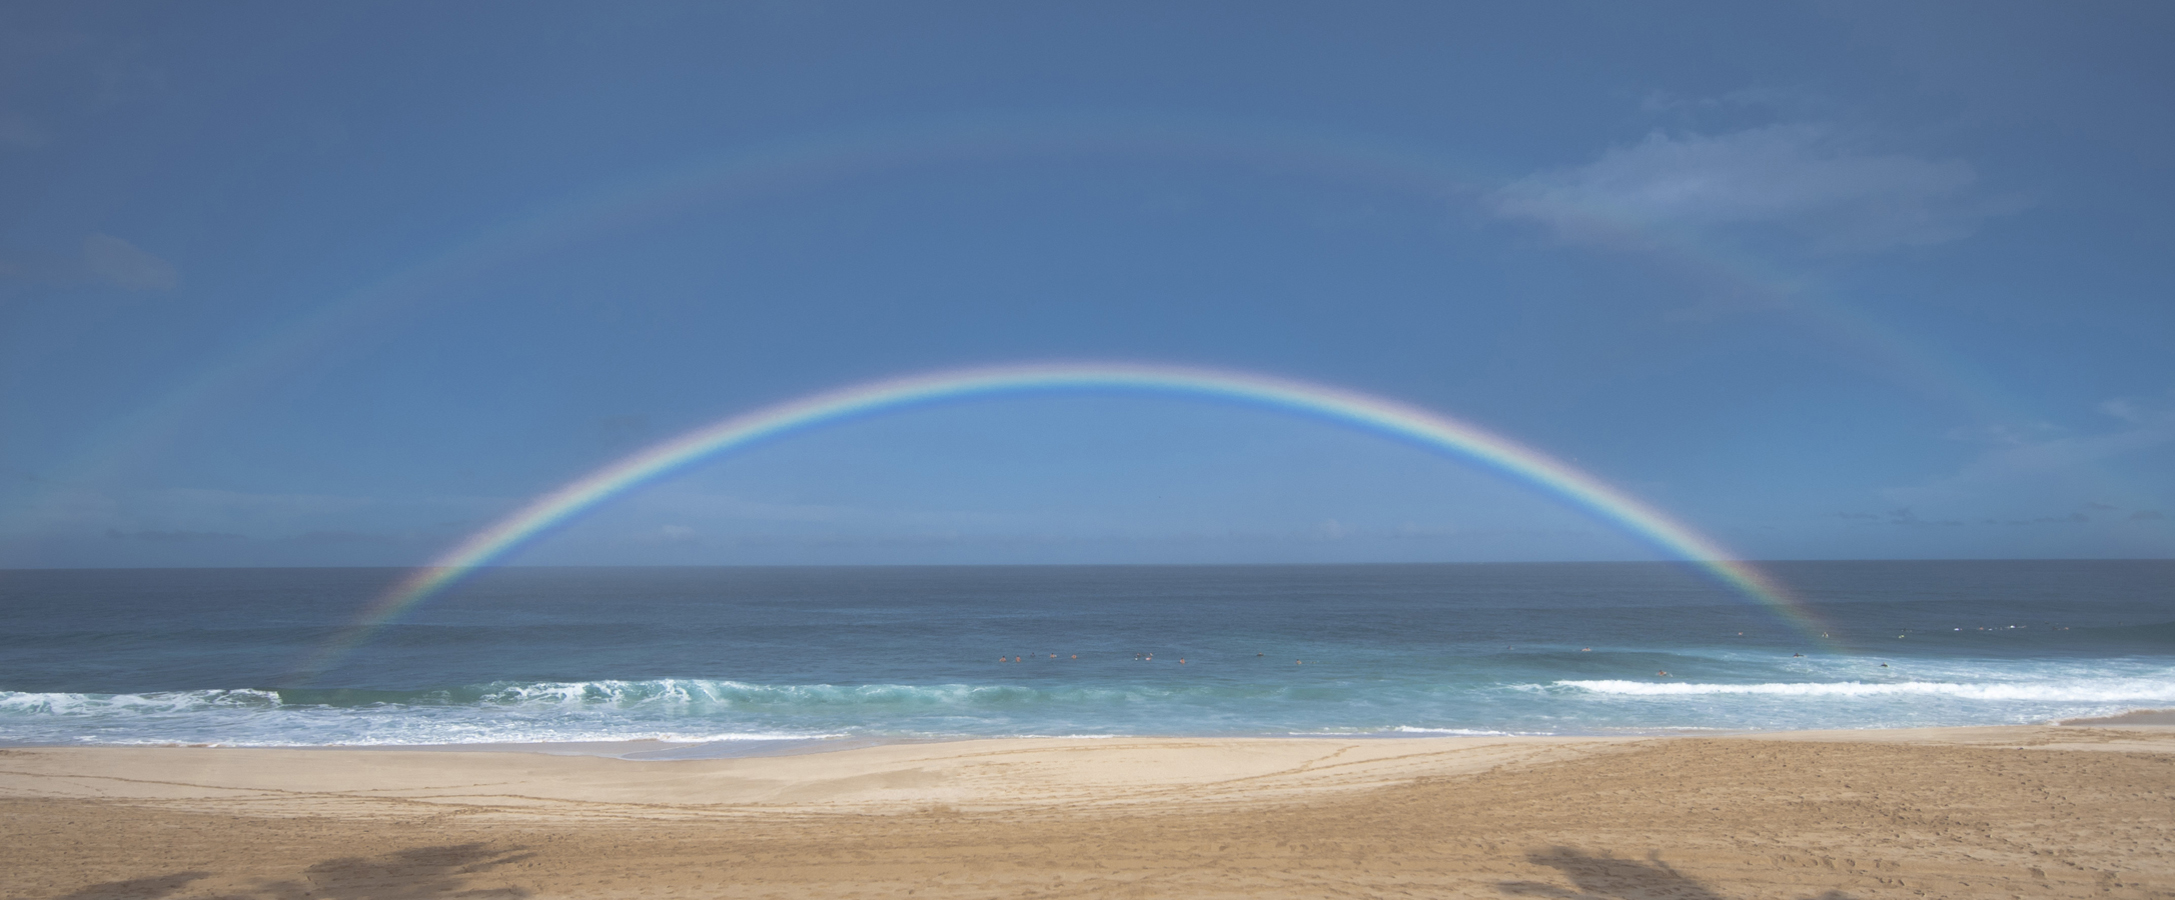 [Full rainbow] Photo by Ruben Carillo.